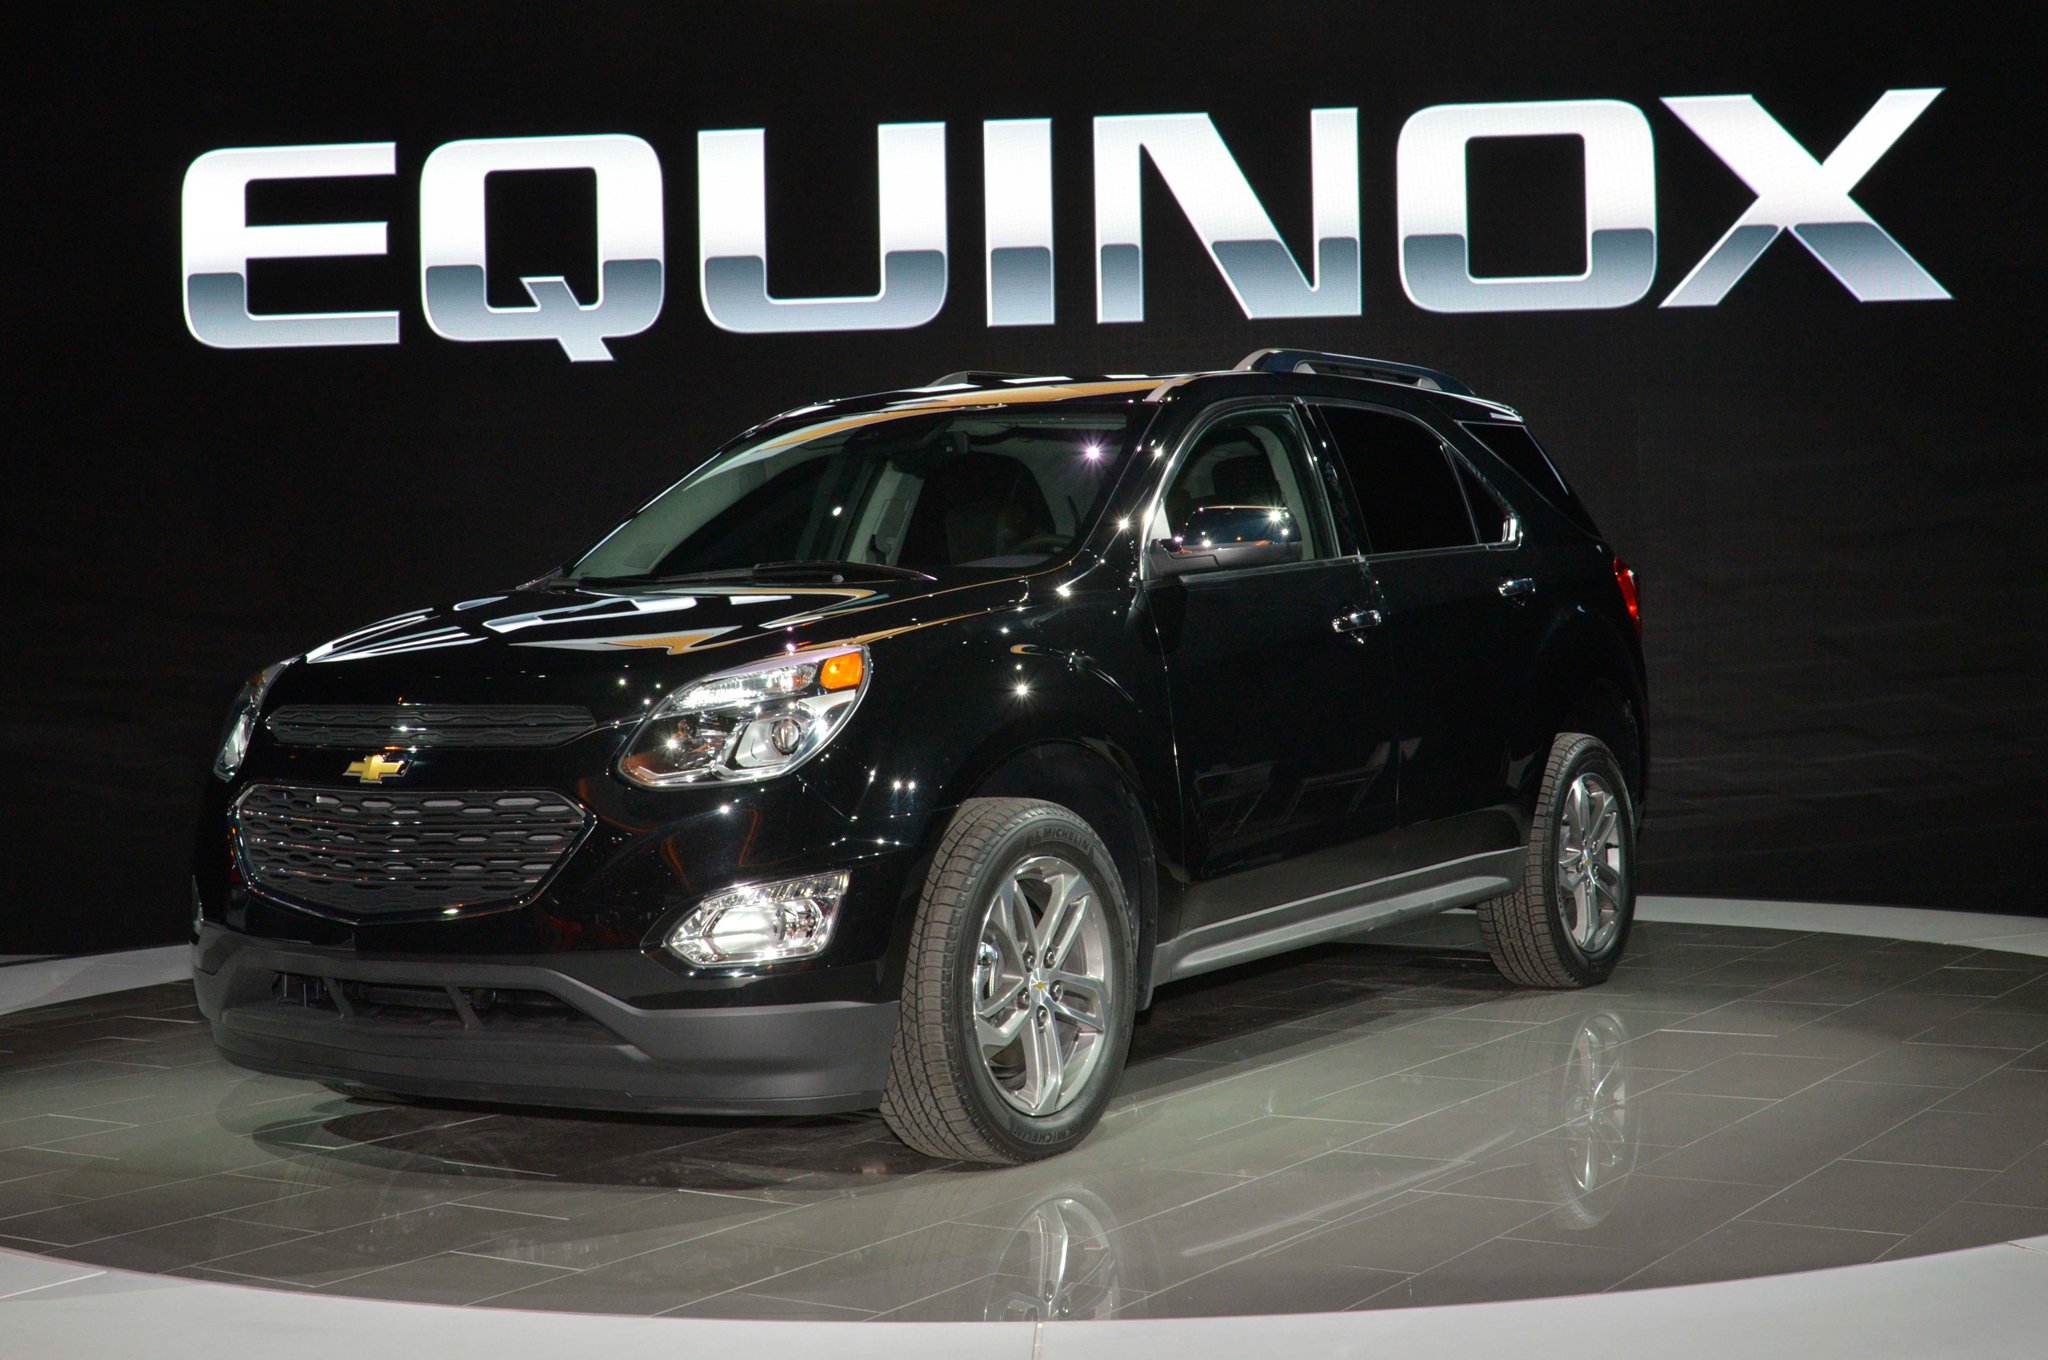 updated styling trim levels for 2016 equinox mccluskey chevrolet. Black Bedroom Furniture Sets. Home Design Ideas